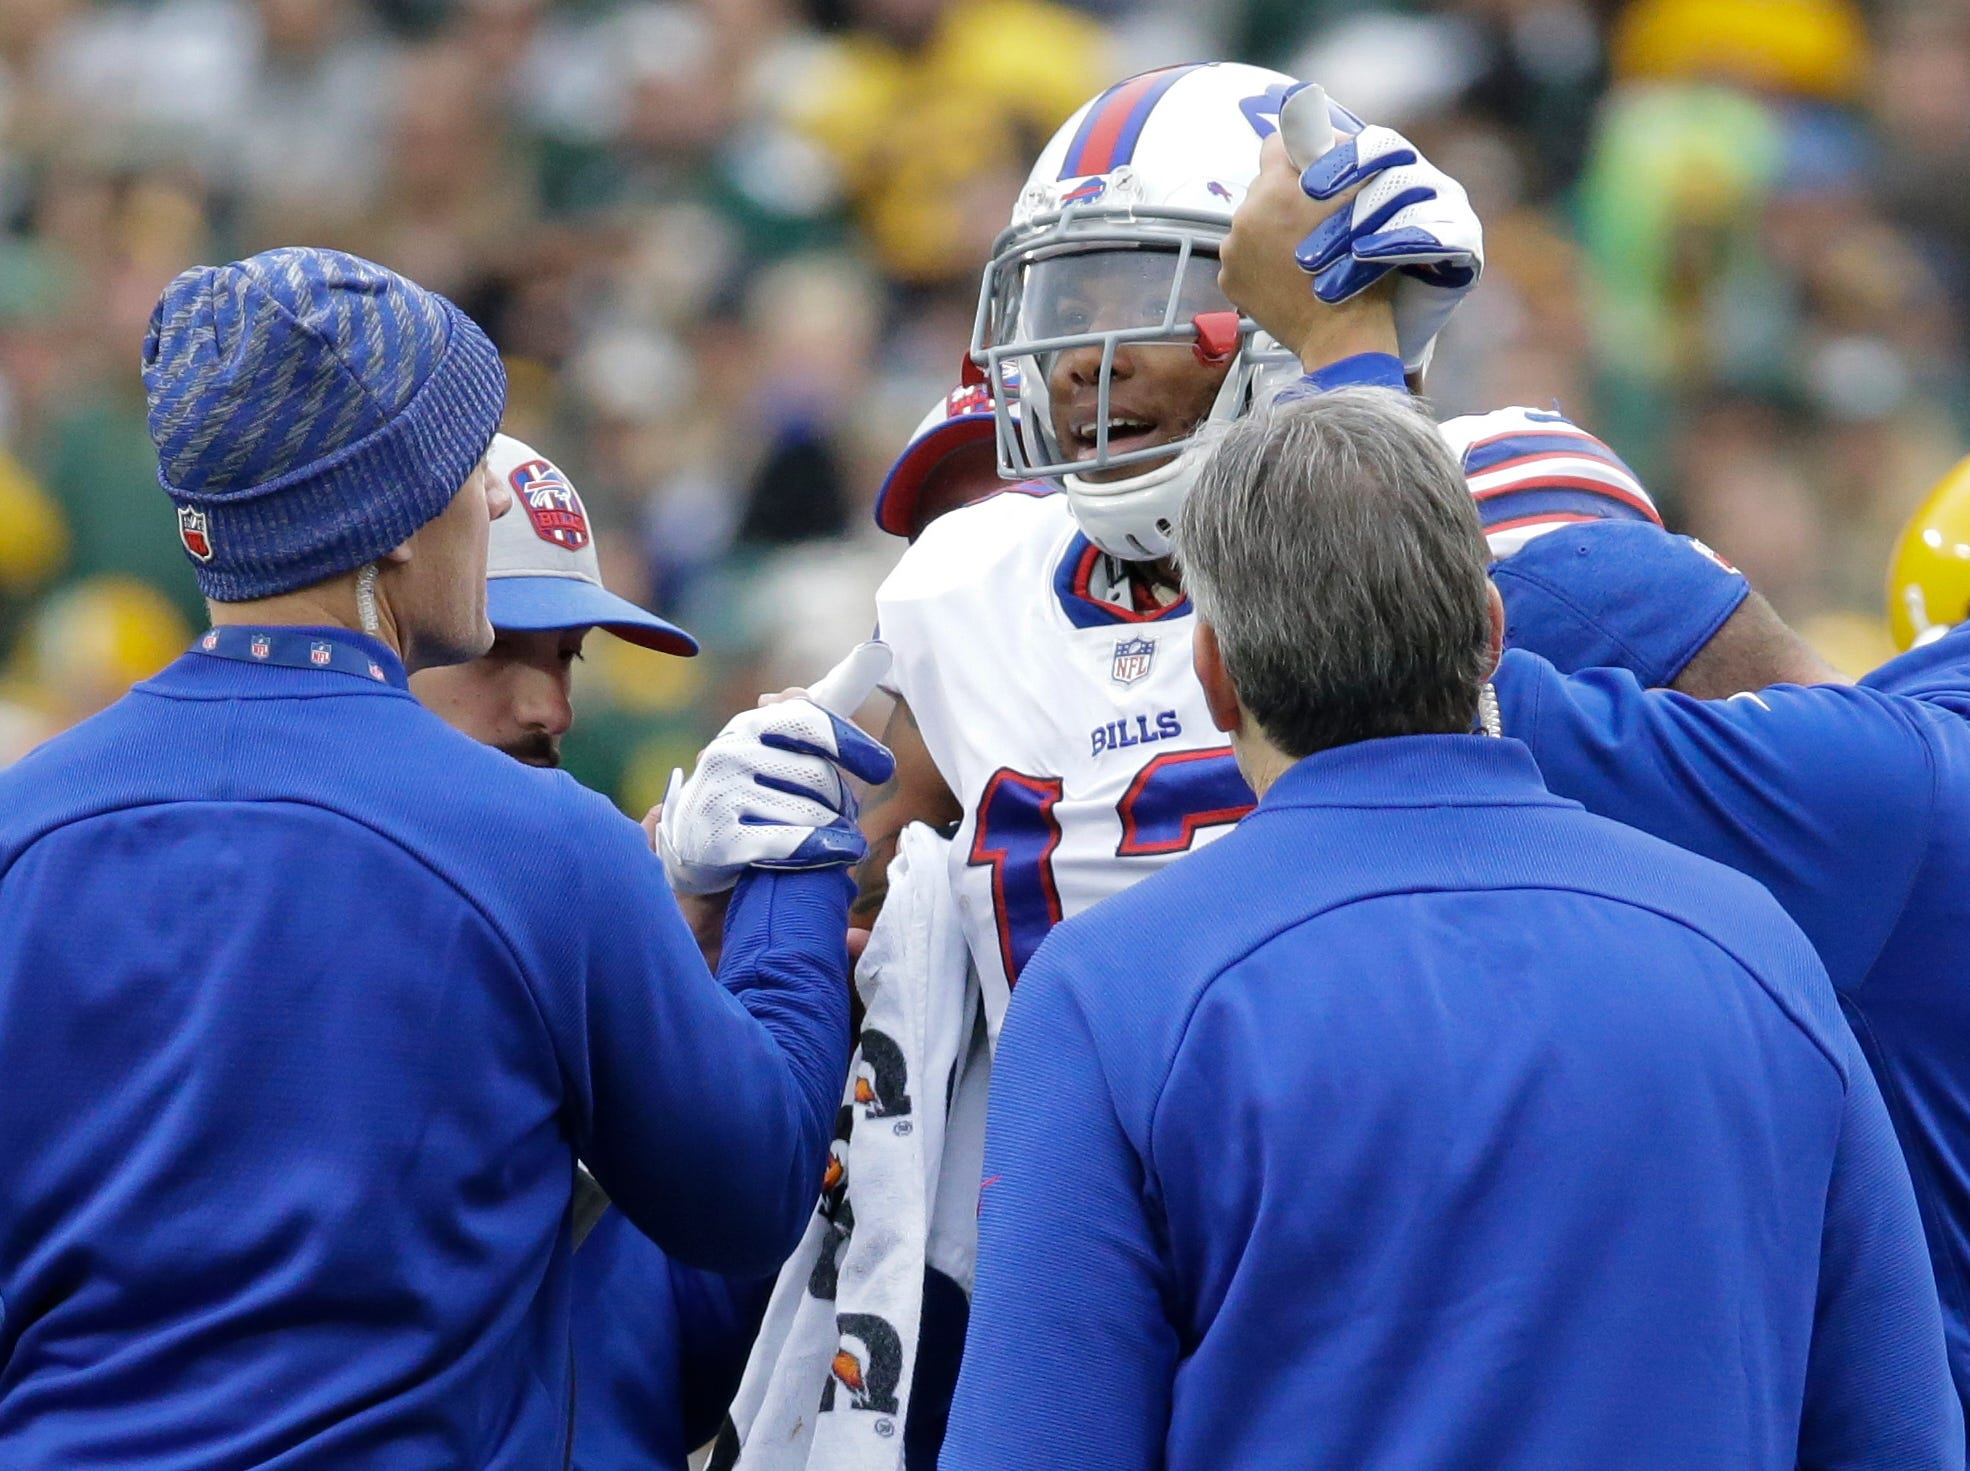 Buffalo Bills' Kelvin Benjamin is helped off the field after being injured during the second half of an NFL football game against the Green Bay Packers.